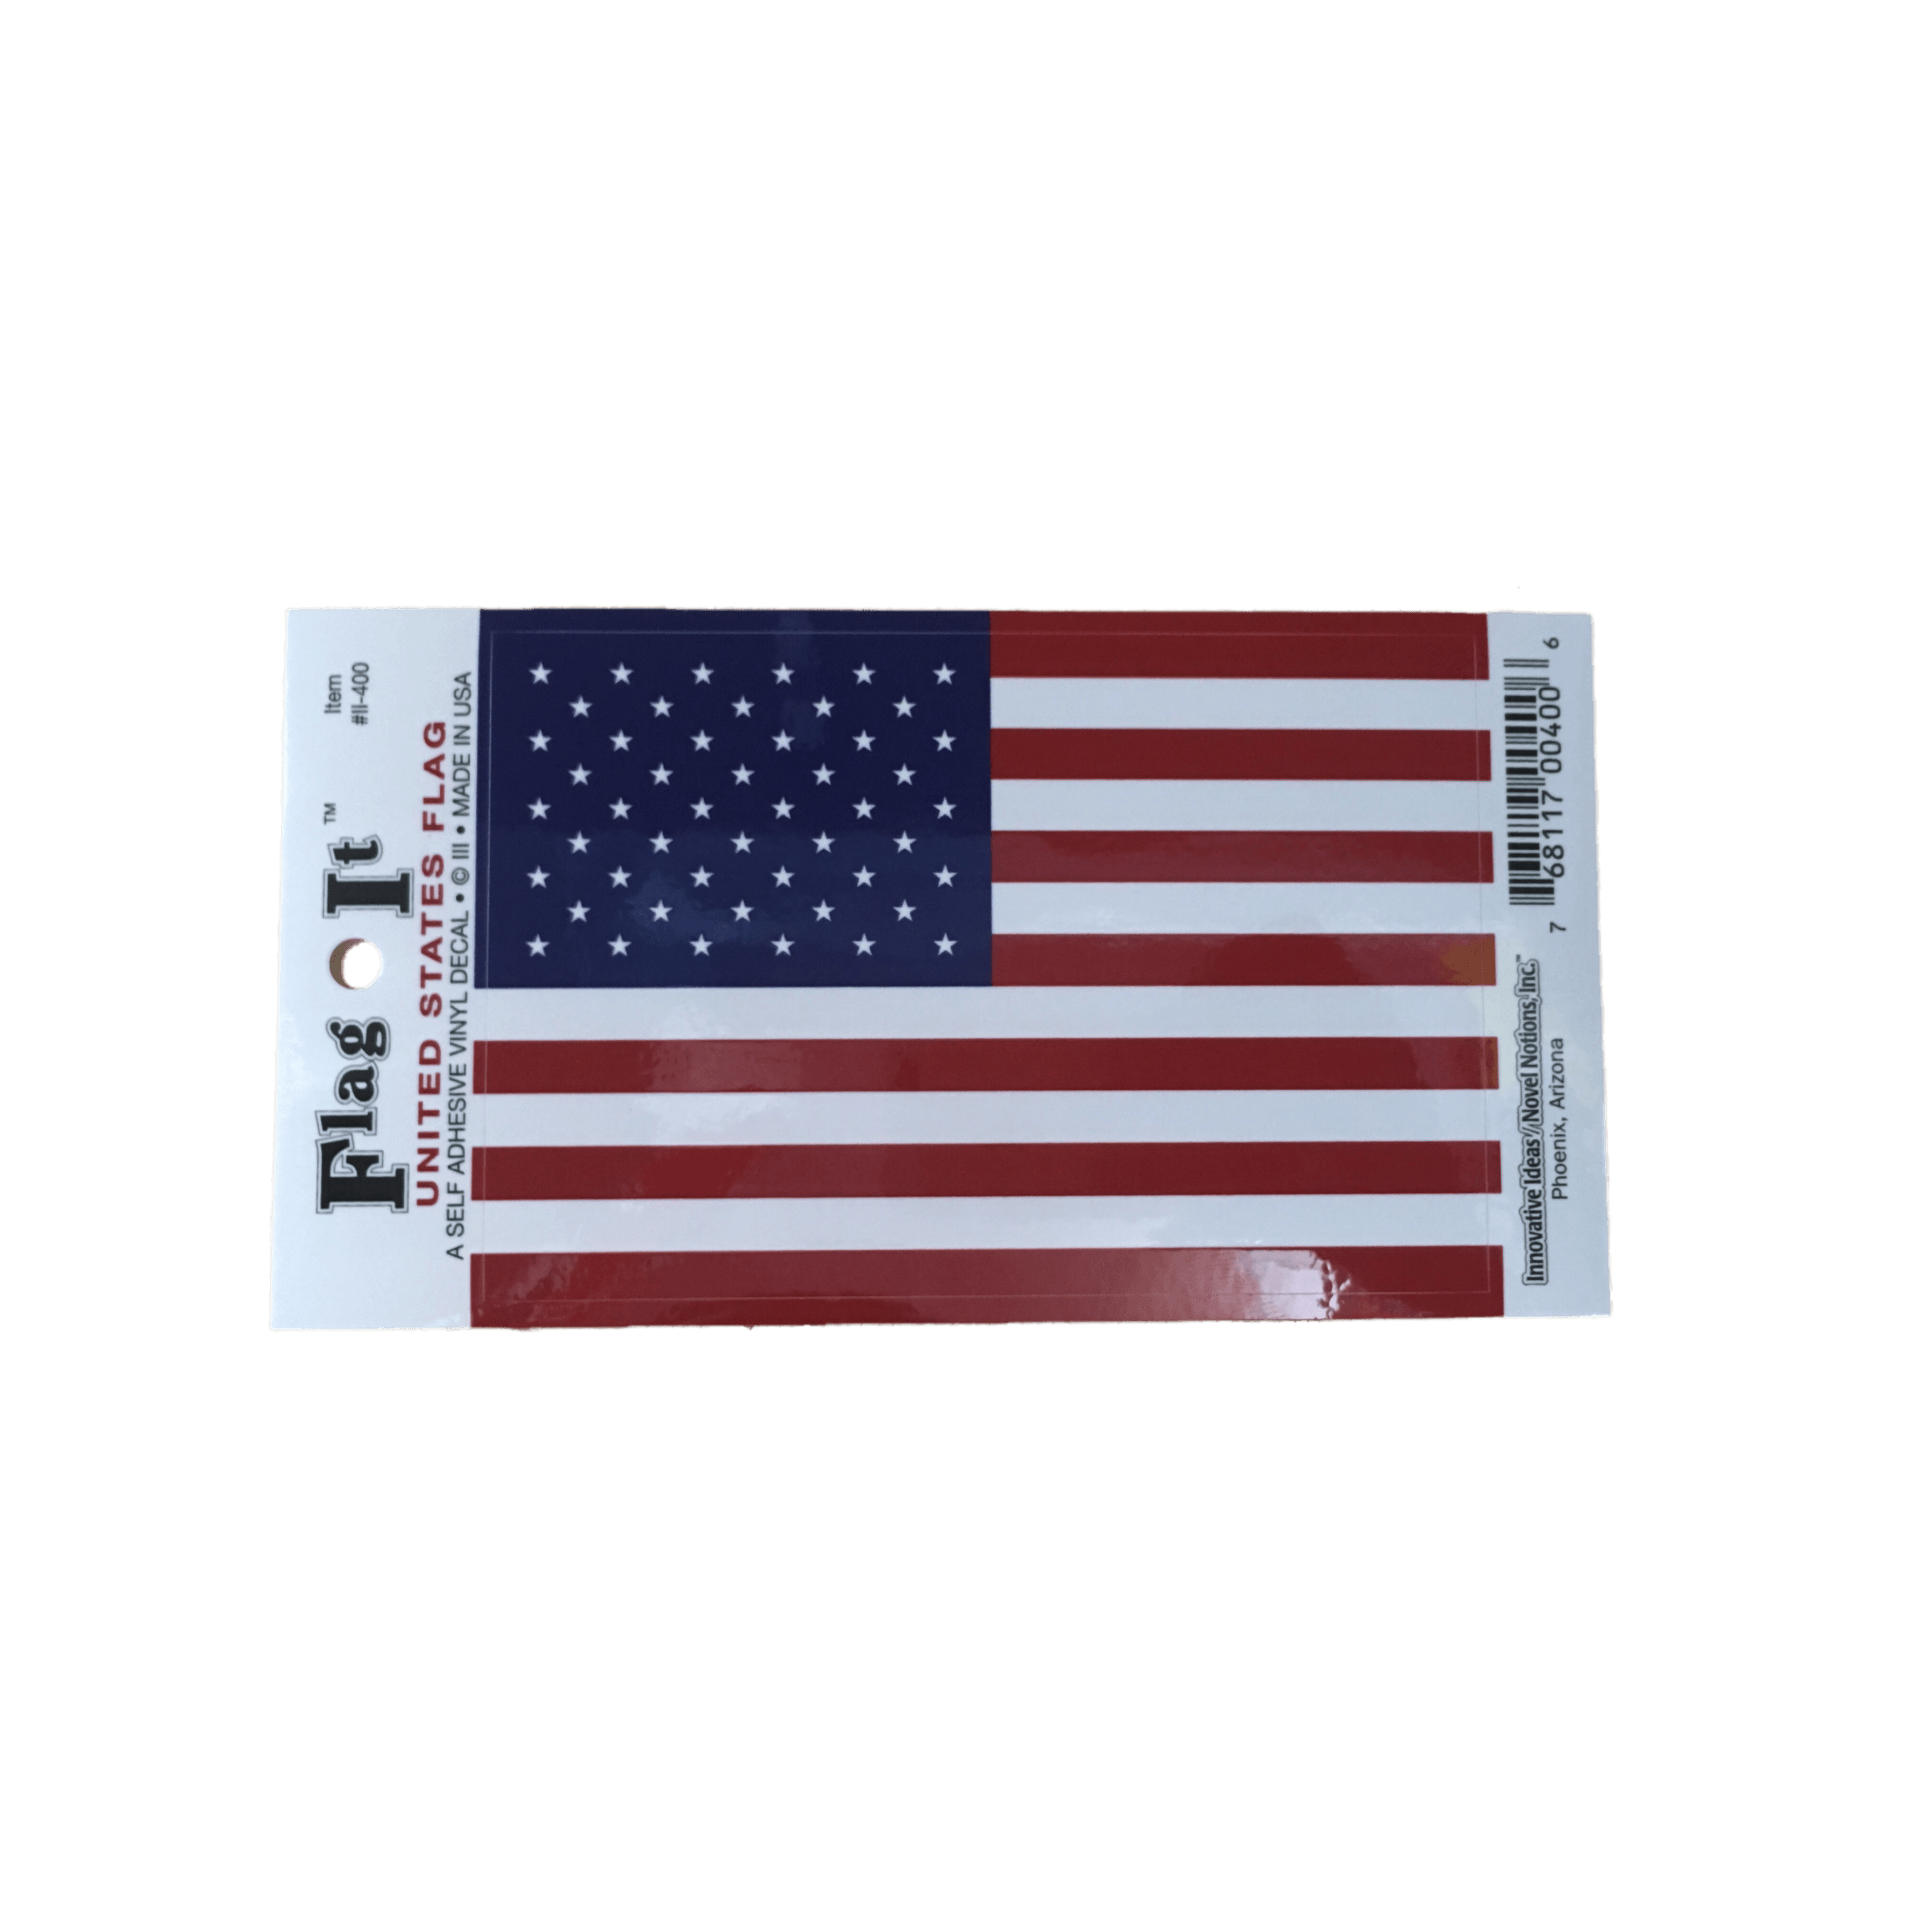 American flag sticker smallstickerthe dixie shop 14558179 pngv1536520777